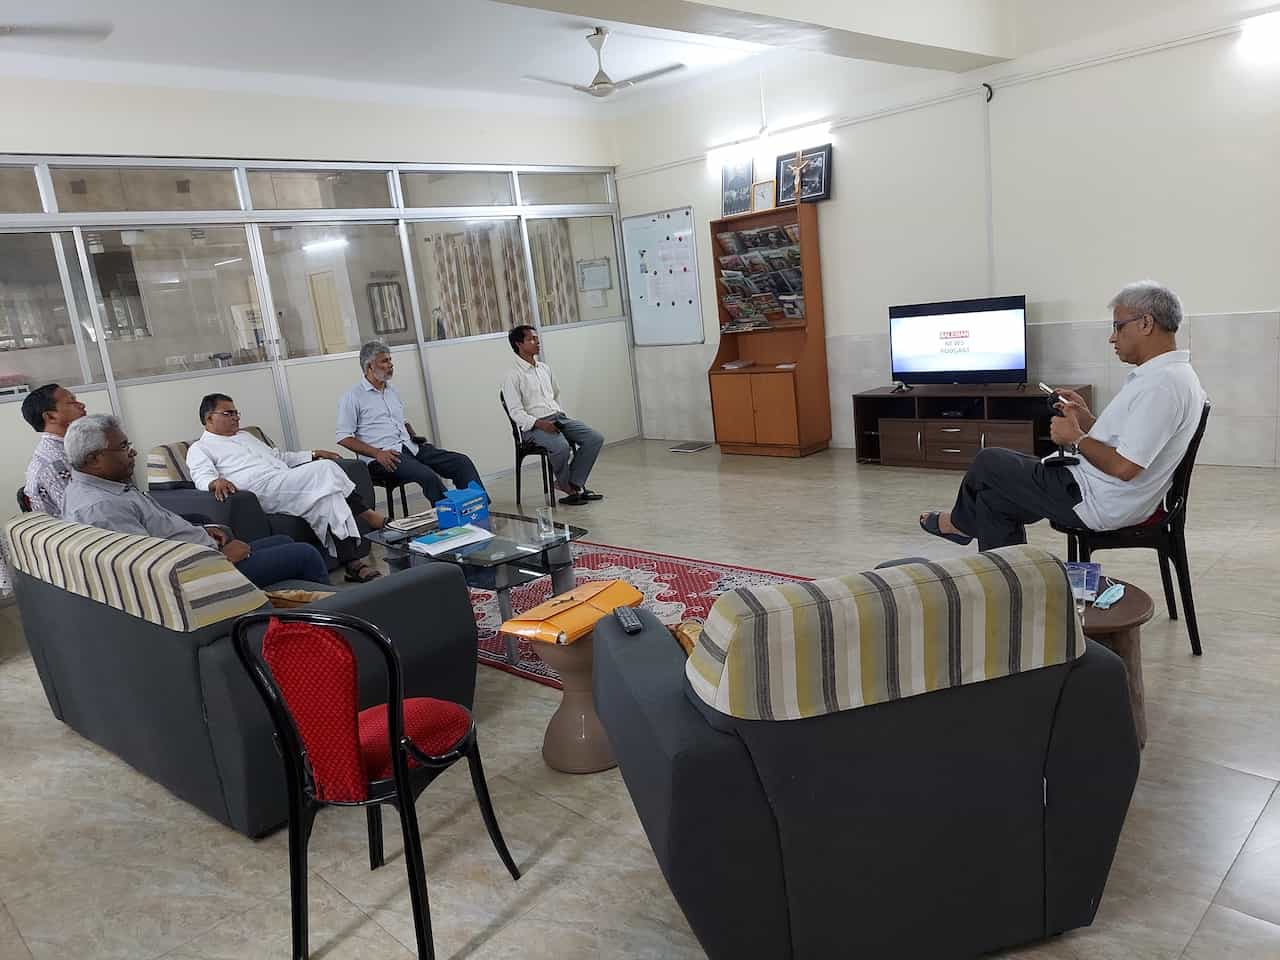 Salesian News Asia-Pacific, produced for Boscom South Asia by Radio Salesian 90.8FM is visited by the Calcutta Salesian Provincial Team Visit - Provincial, Vice Provincial and Economer, at Salesian College Siliguri residence